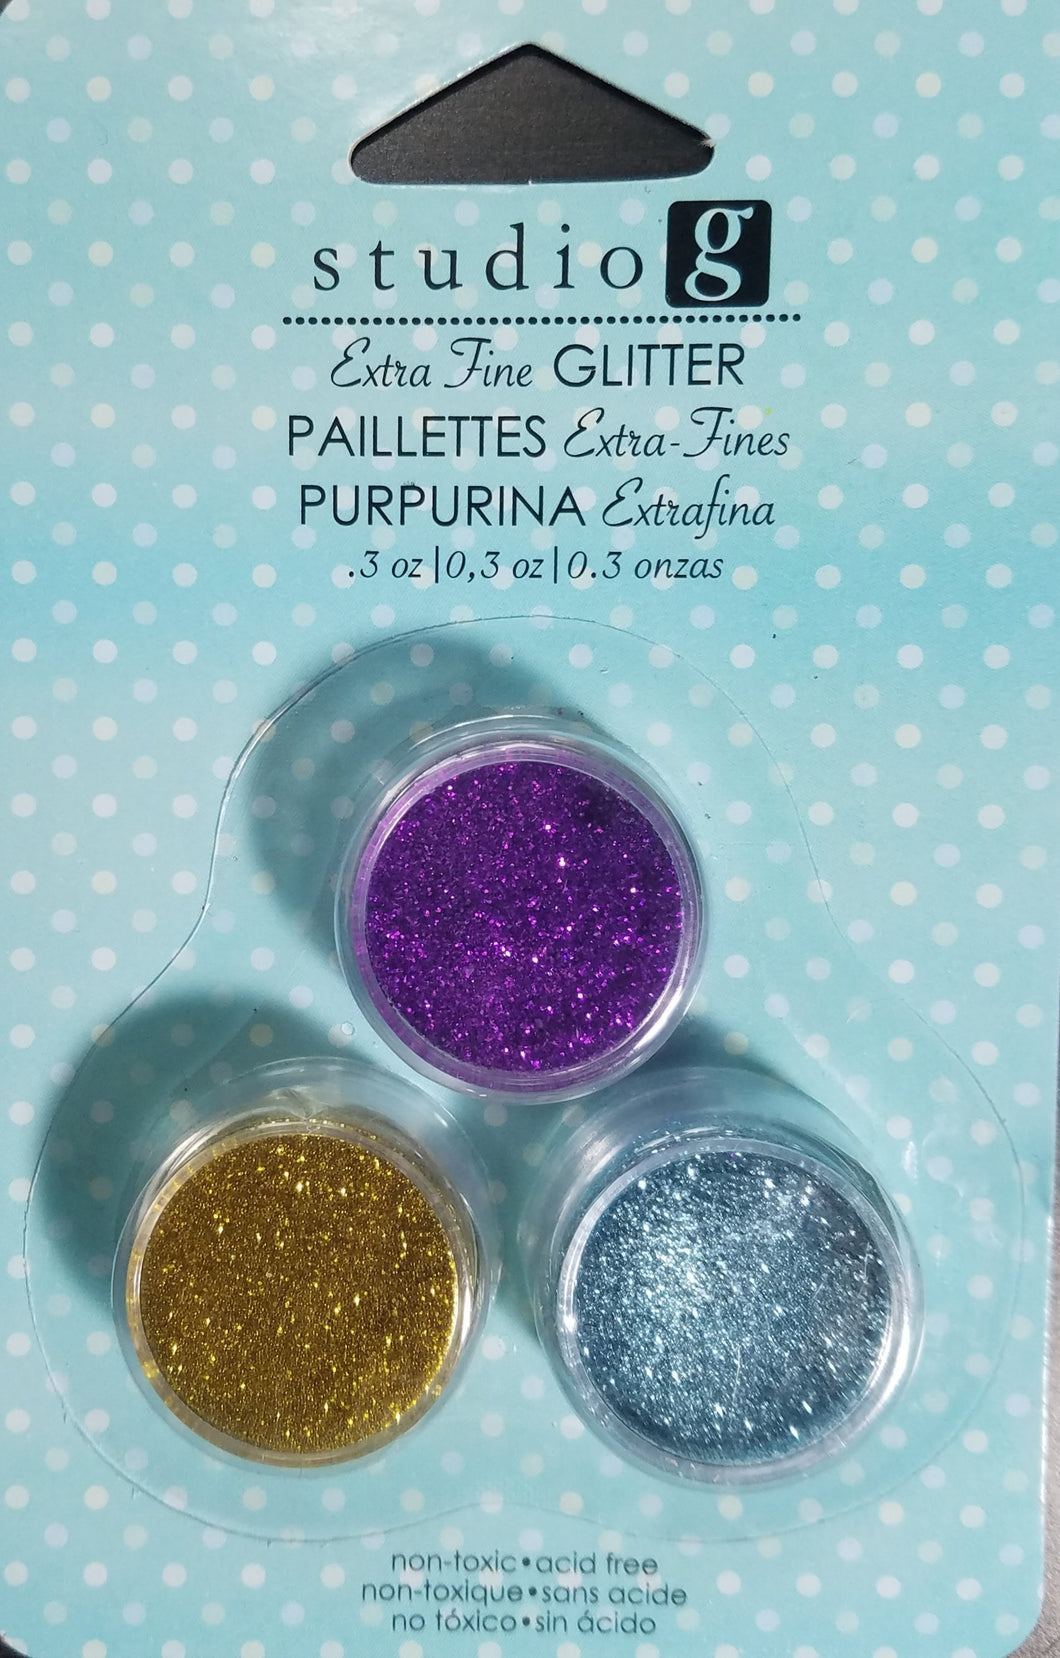 Studio G Glitter Extra Fine 3 pack Purple, Gold and Light Blue